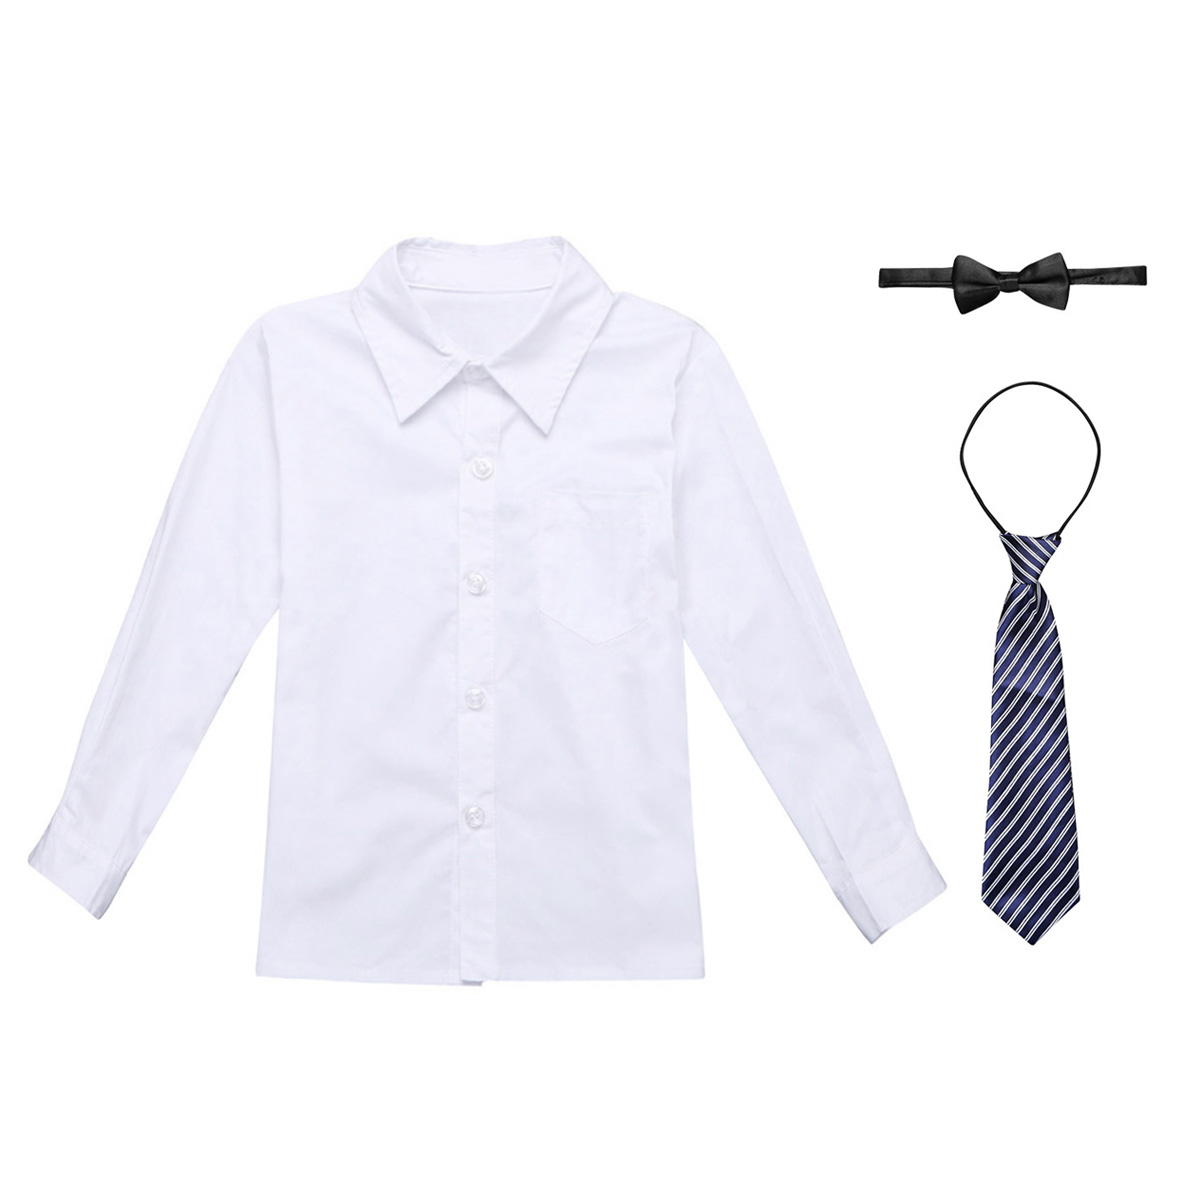 1c1b8199f87e Kids Boys School Uniform Outfit Long Sleeves Lapel Button Down Shirt with  Necktie and Bowtie Set SZ 4 14-in Shirts from Mother & Kids on  Aliexpress.com ...